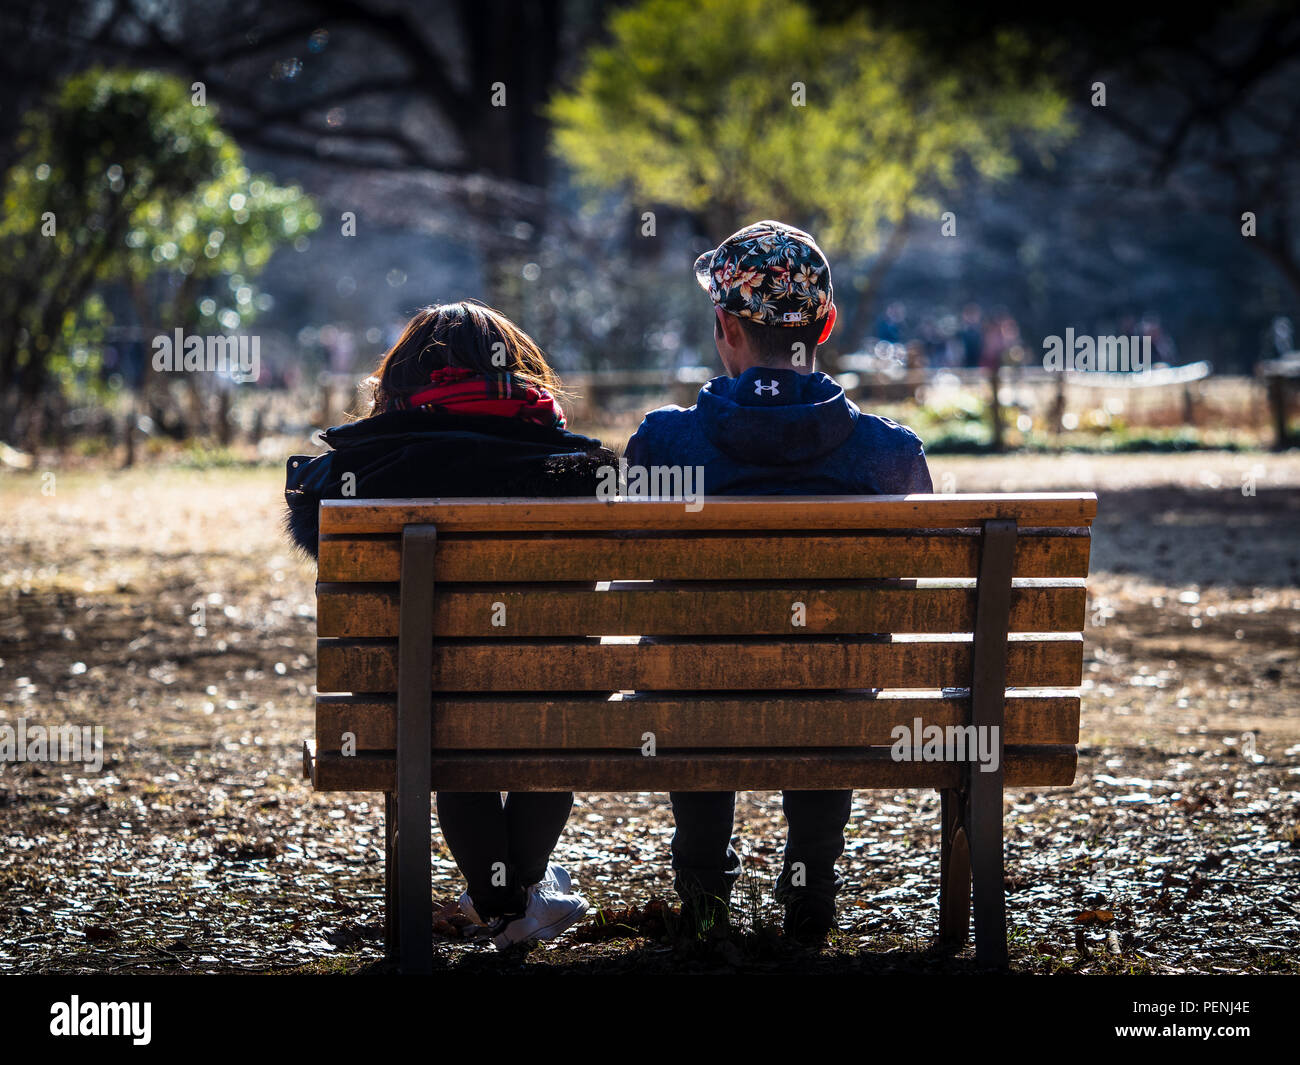 Park Life Tokyo Yoyogi Park - a couple relax on a park bench in Yoyogi Park in Shibuya-ku Tokyo Japan - Stock Image